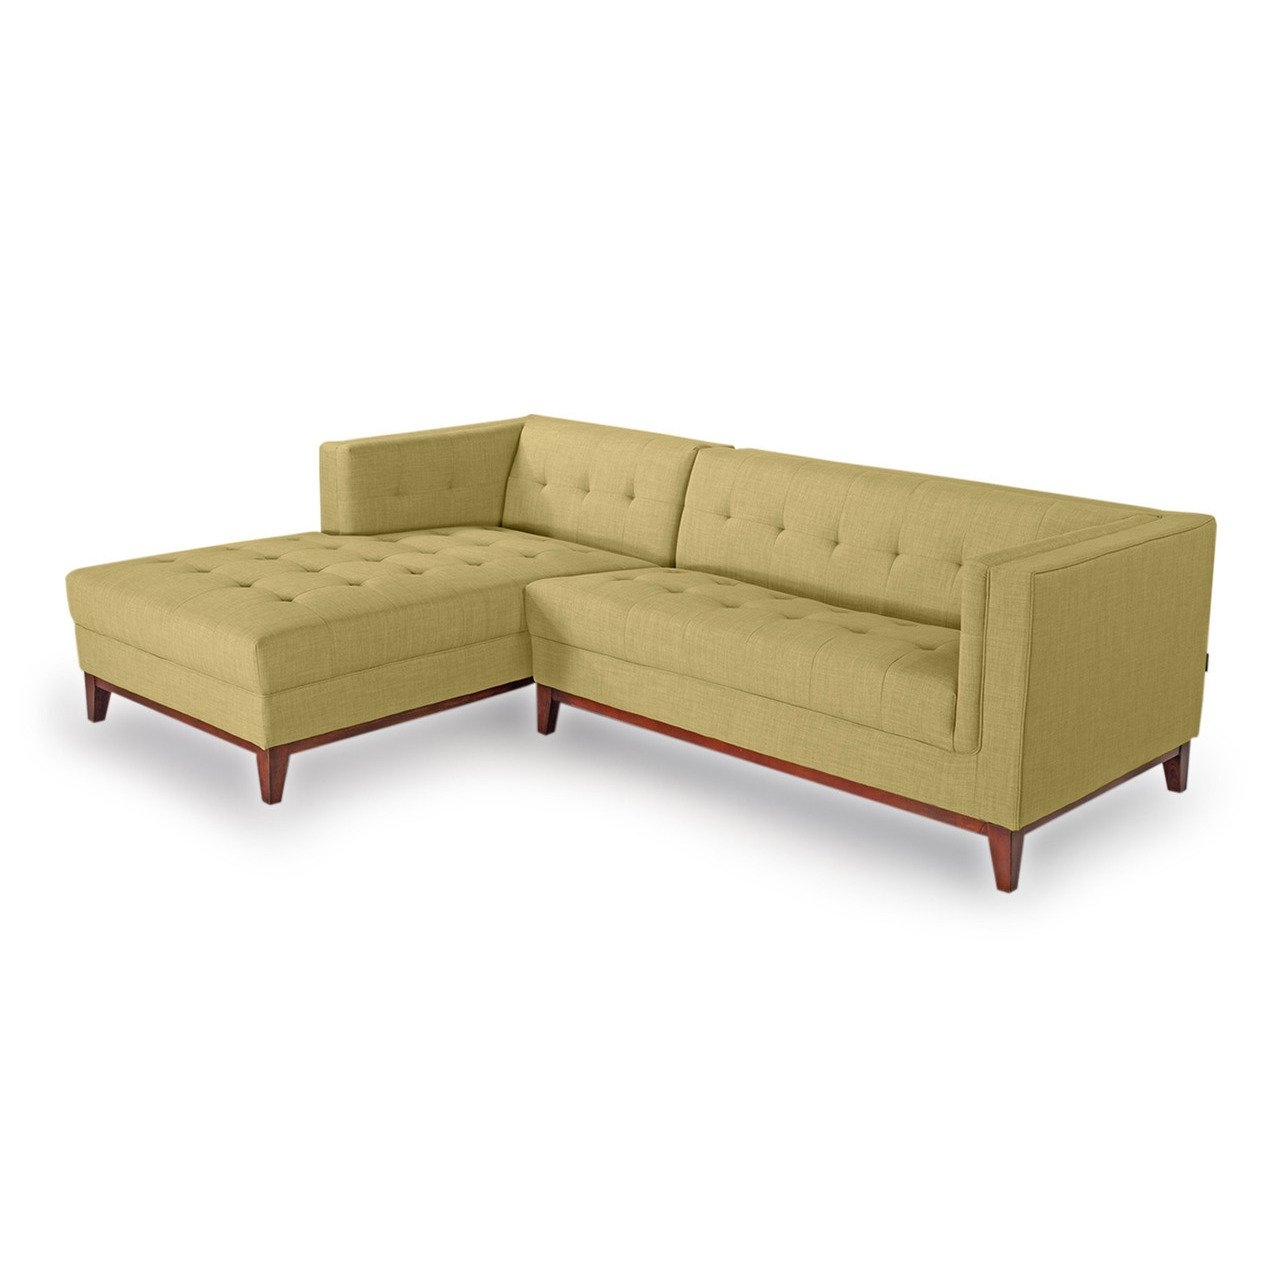 Shop Kardiel Harrison Mid Century Modern Twill Loft Sofa Left Chaise Intended For Loft Arm Sofa Chairs (Image 20 of 25)